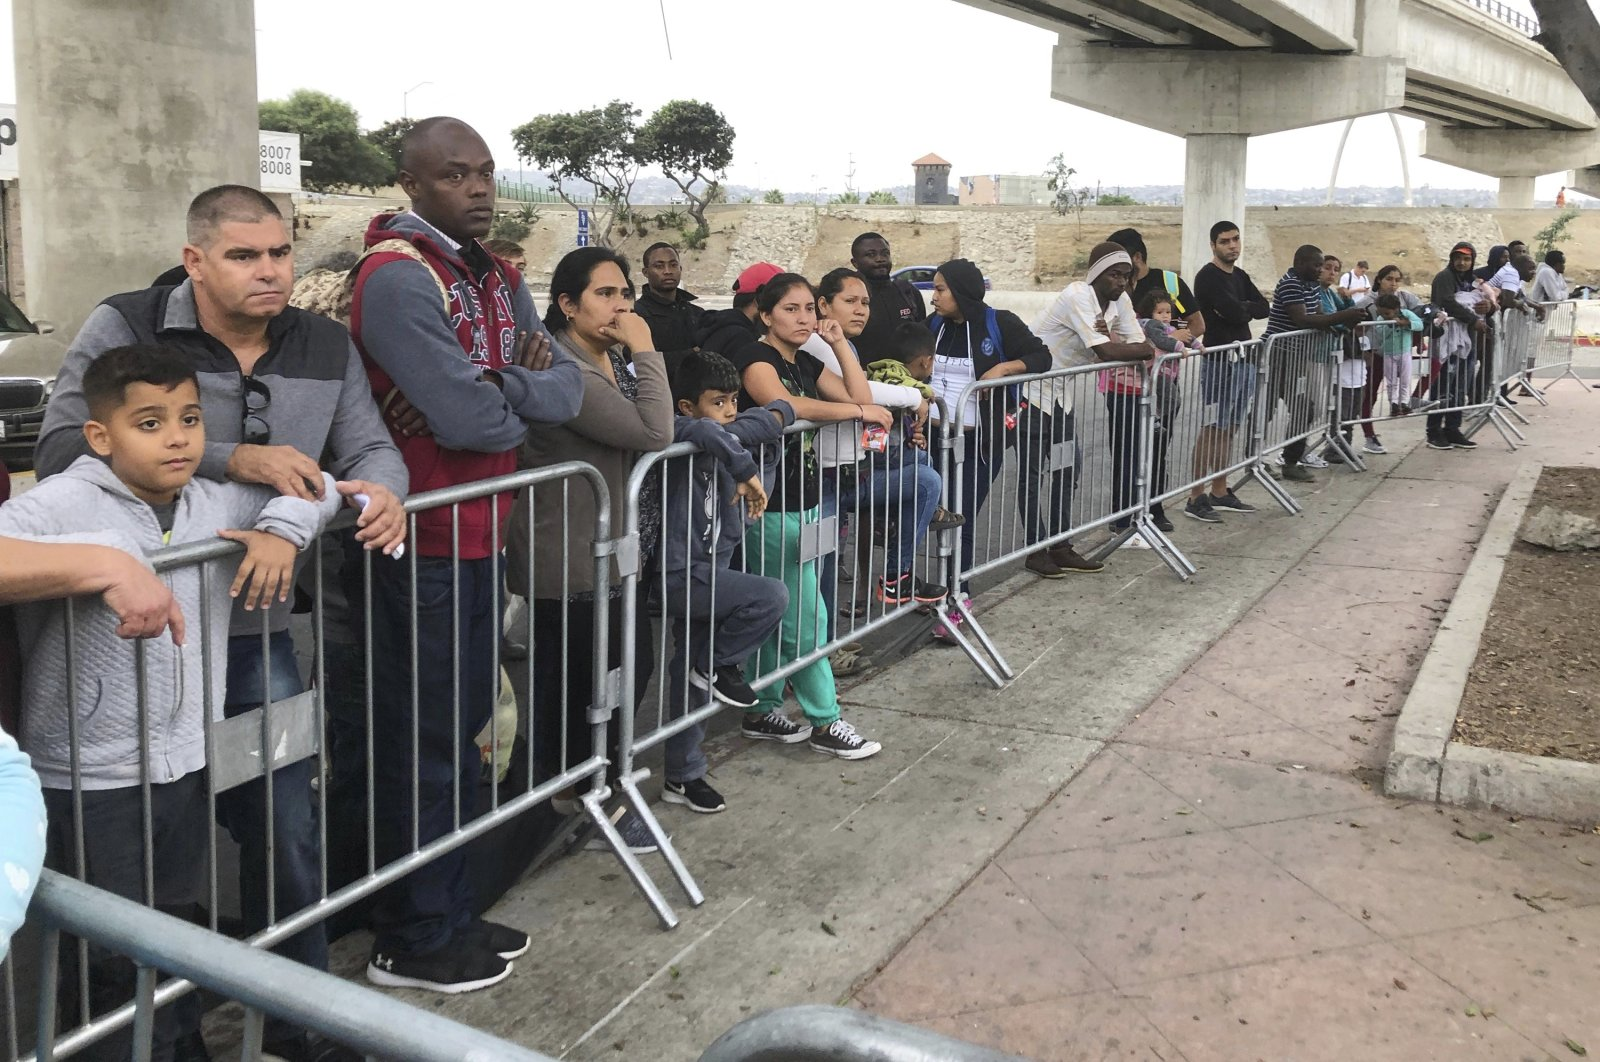 Asylum seekers in Tijuana, Mexico, listen to names being called from a waiting list to claim asylum at a border crossing in San Diego, California, U.S., Sept. 26, 2019. (AP Photo)